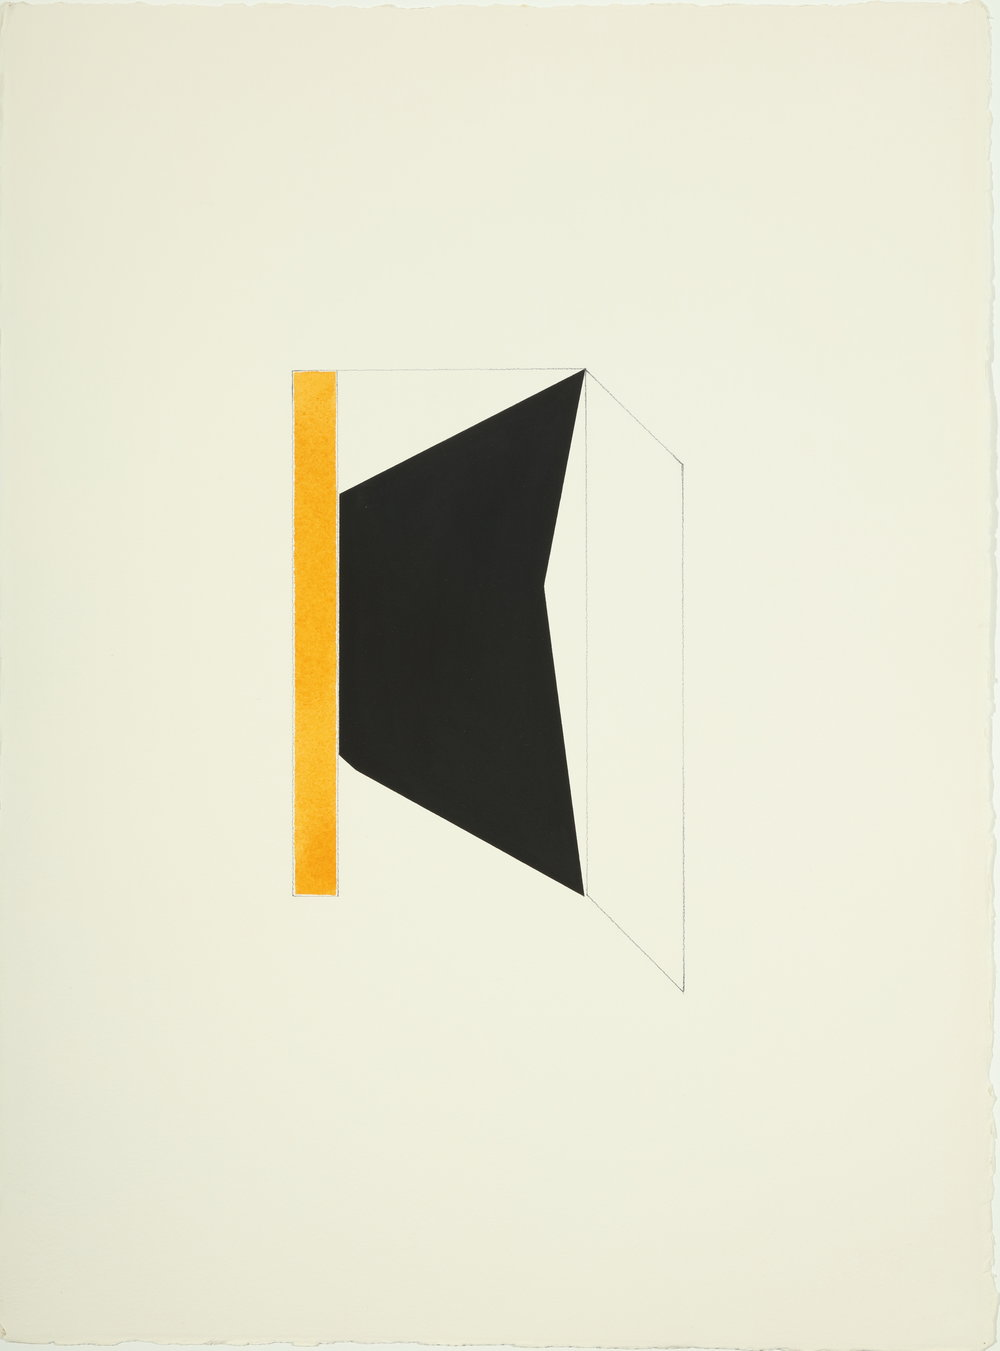 The Fox,  1977 - 1978    Acrylic and pencil on paper 30.5H x 22.875W inches unframed $5,000 unframed $5,485 framed